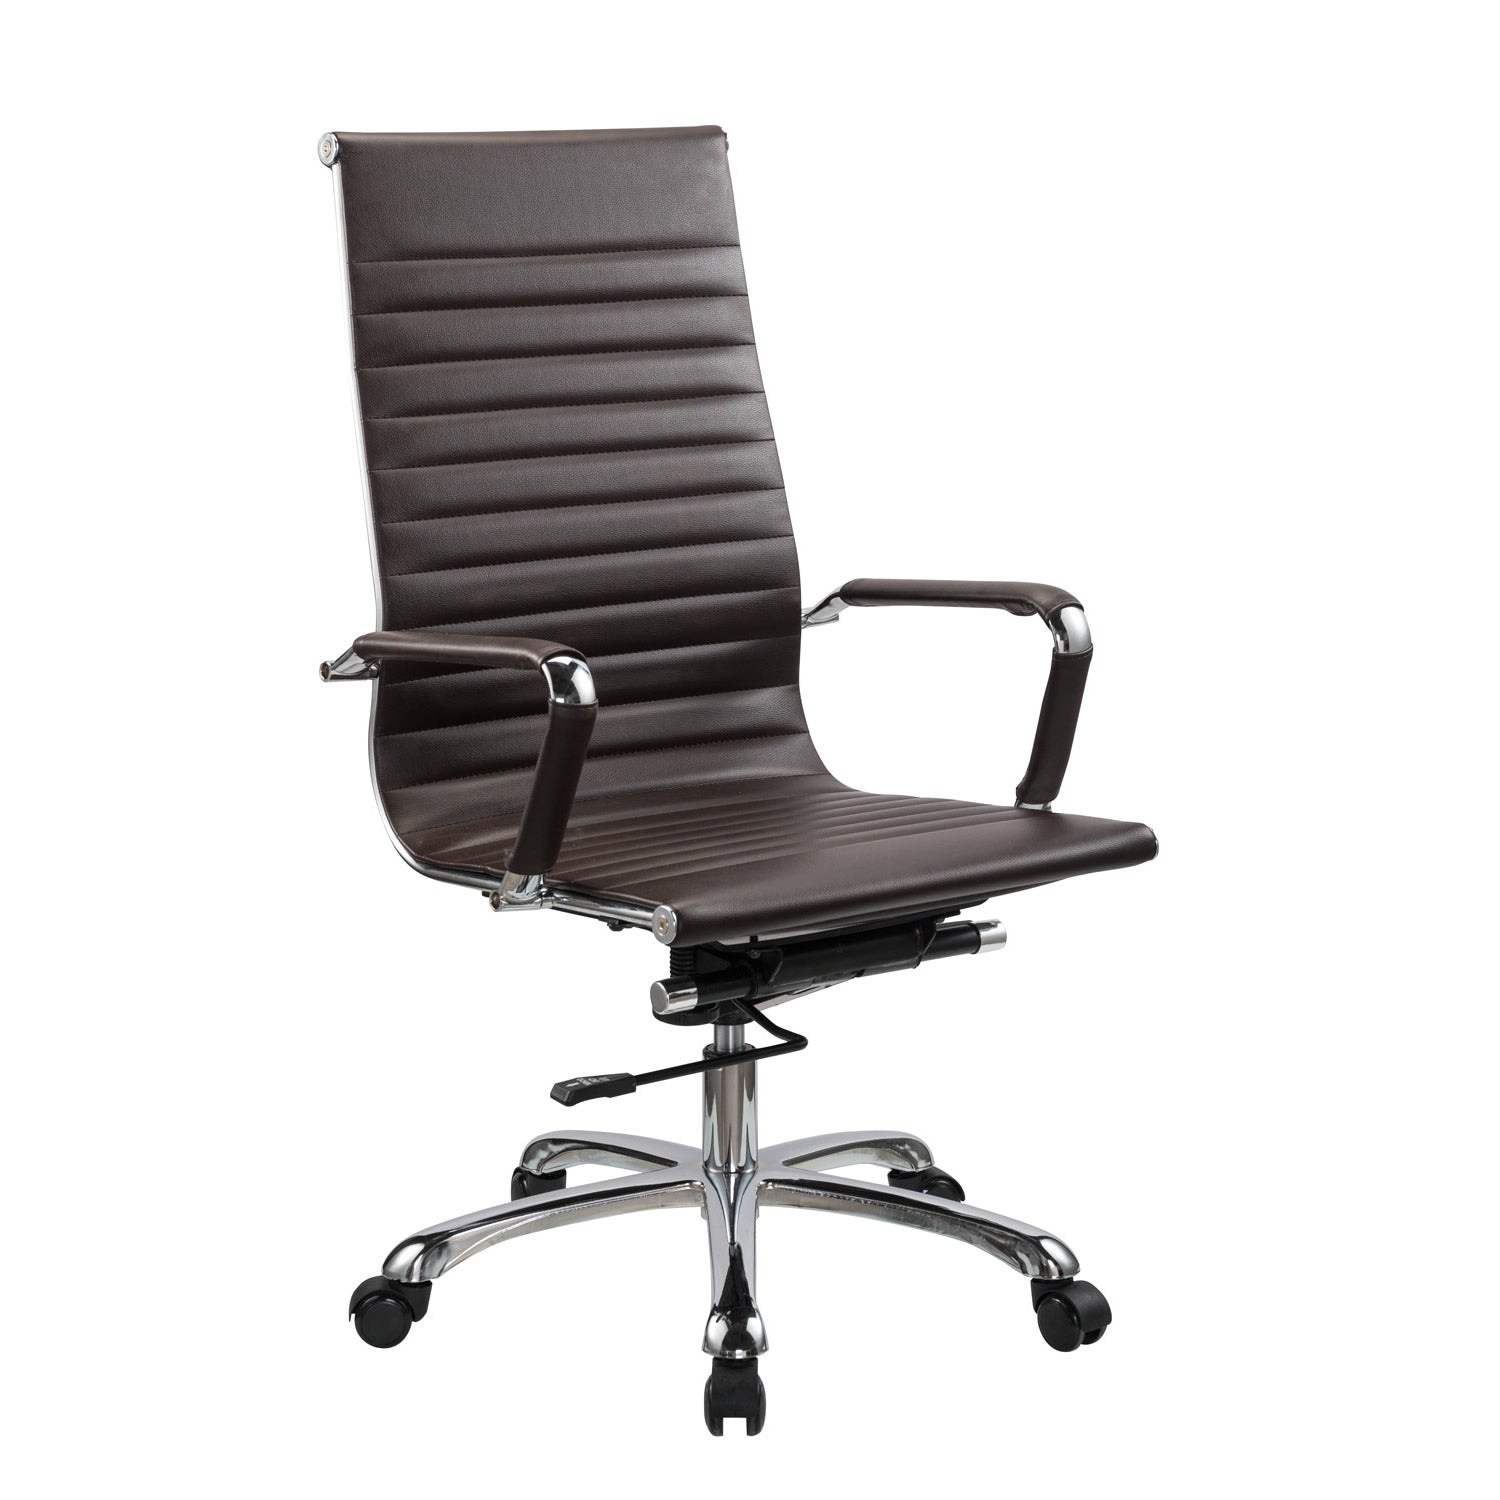 bikey nova collection high back leather executive office chair